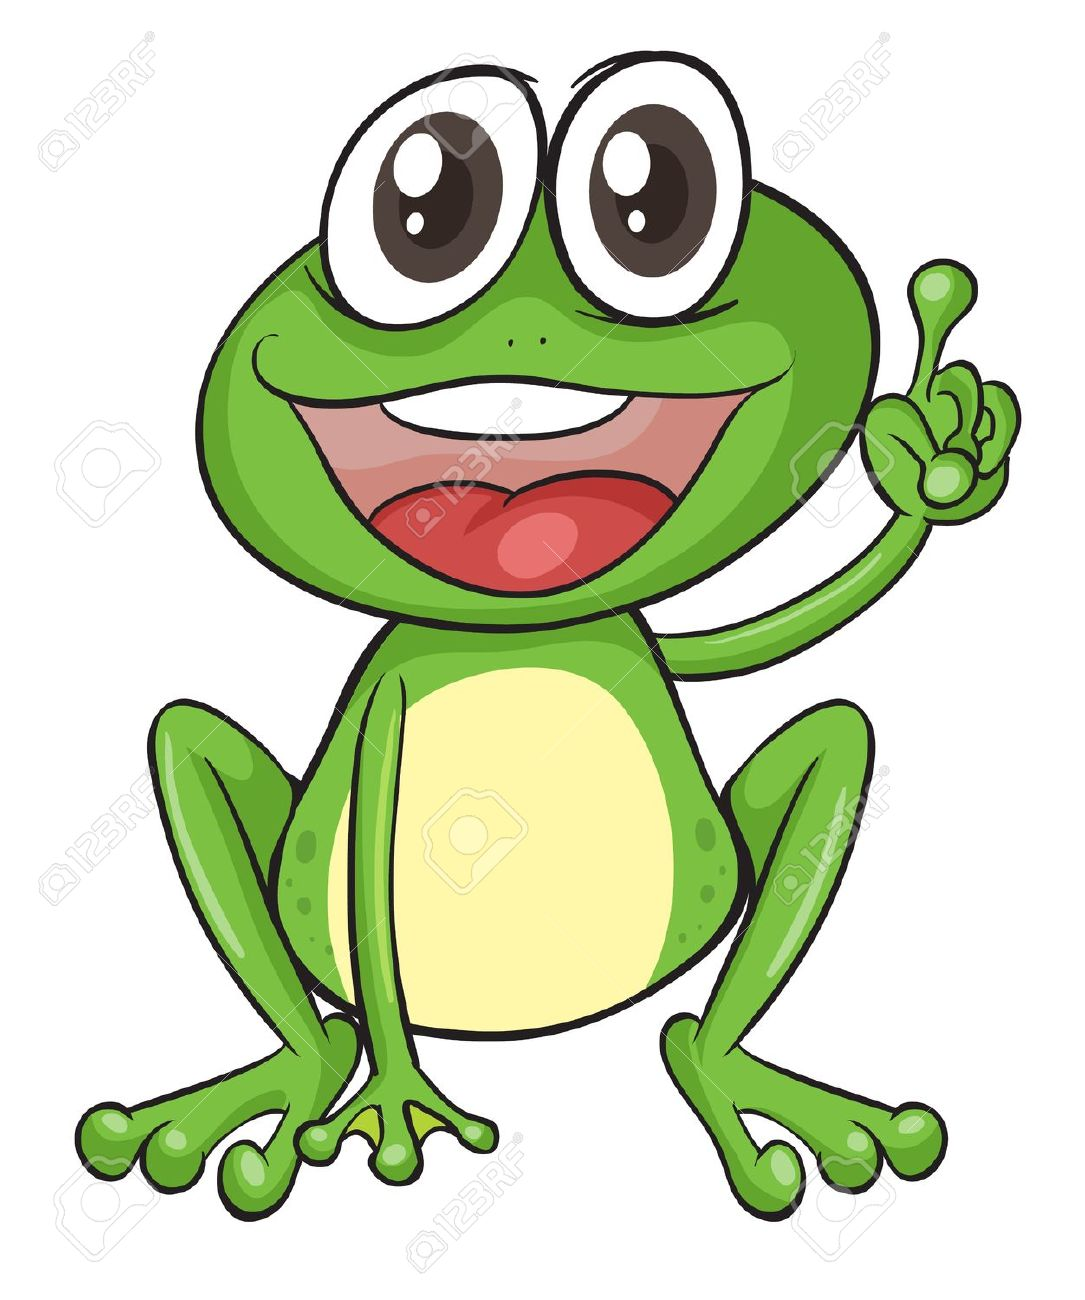 hight resolution of 1085x1300 free frog clip art drawings and colorful images 2 image 8 2